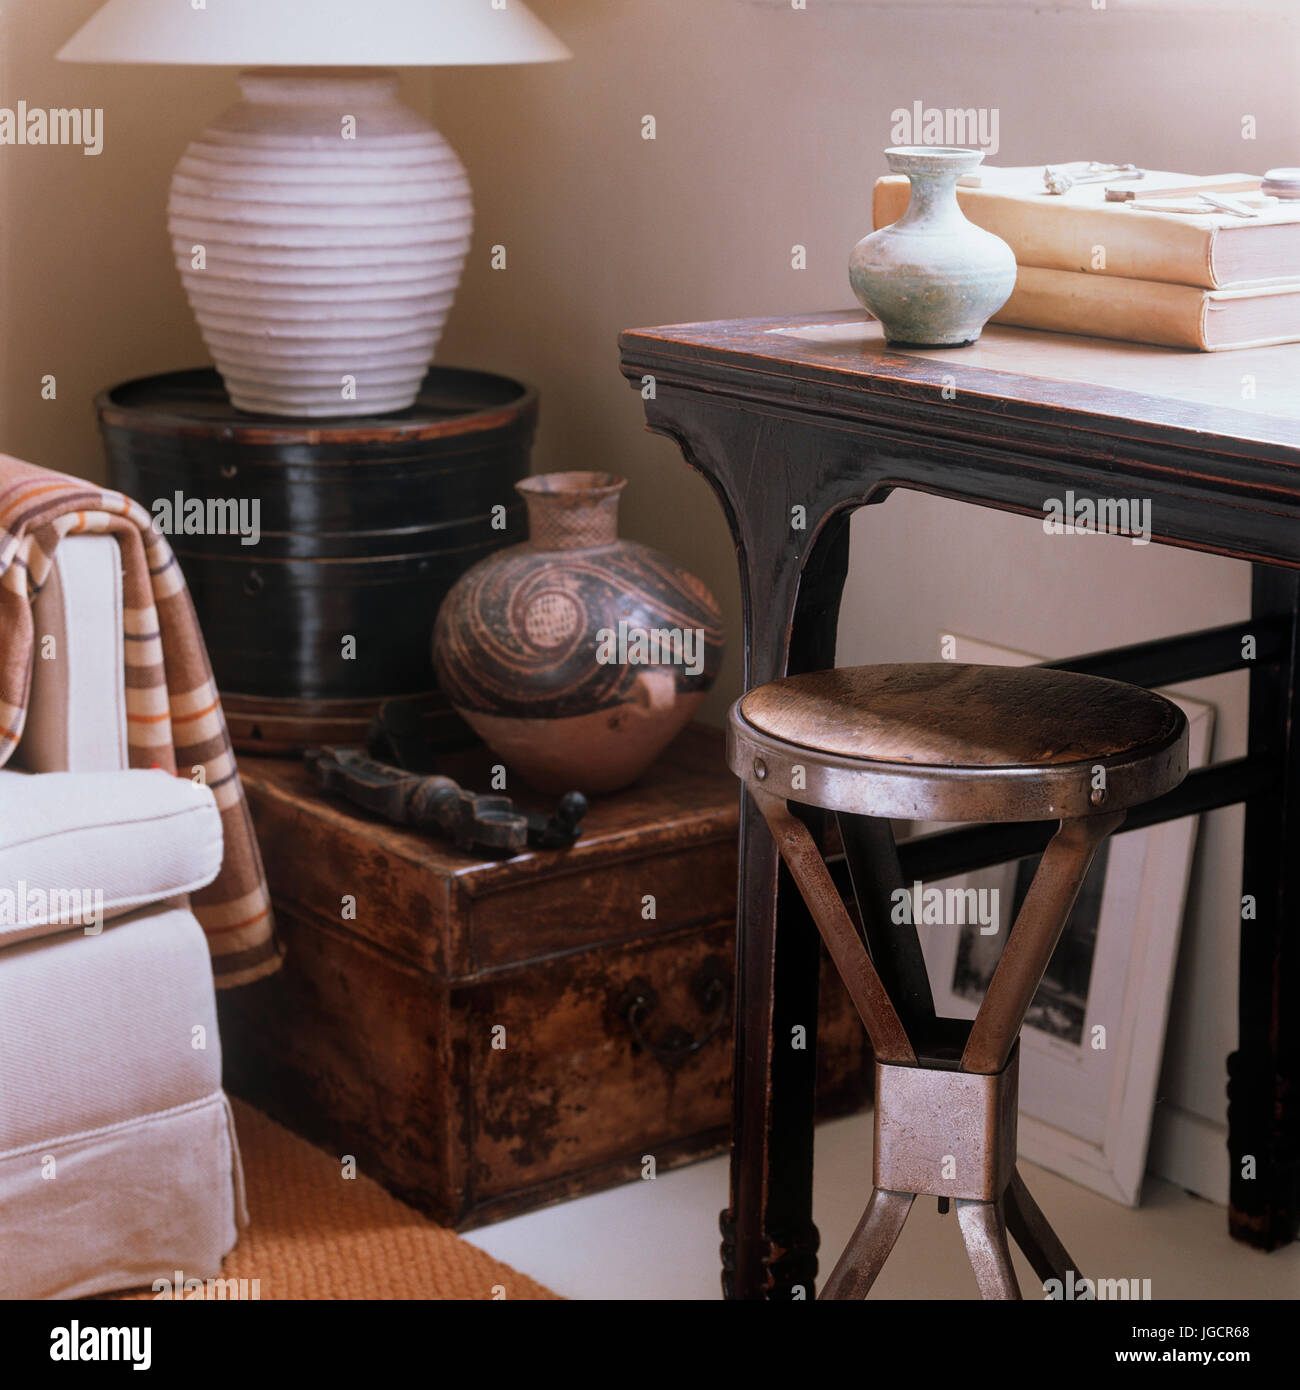 Wooden stool and table by lamp - Stock Image